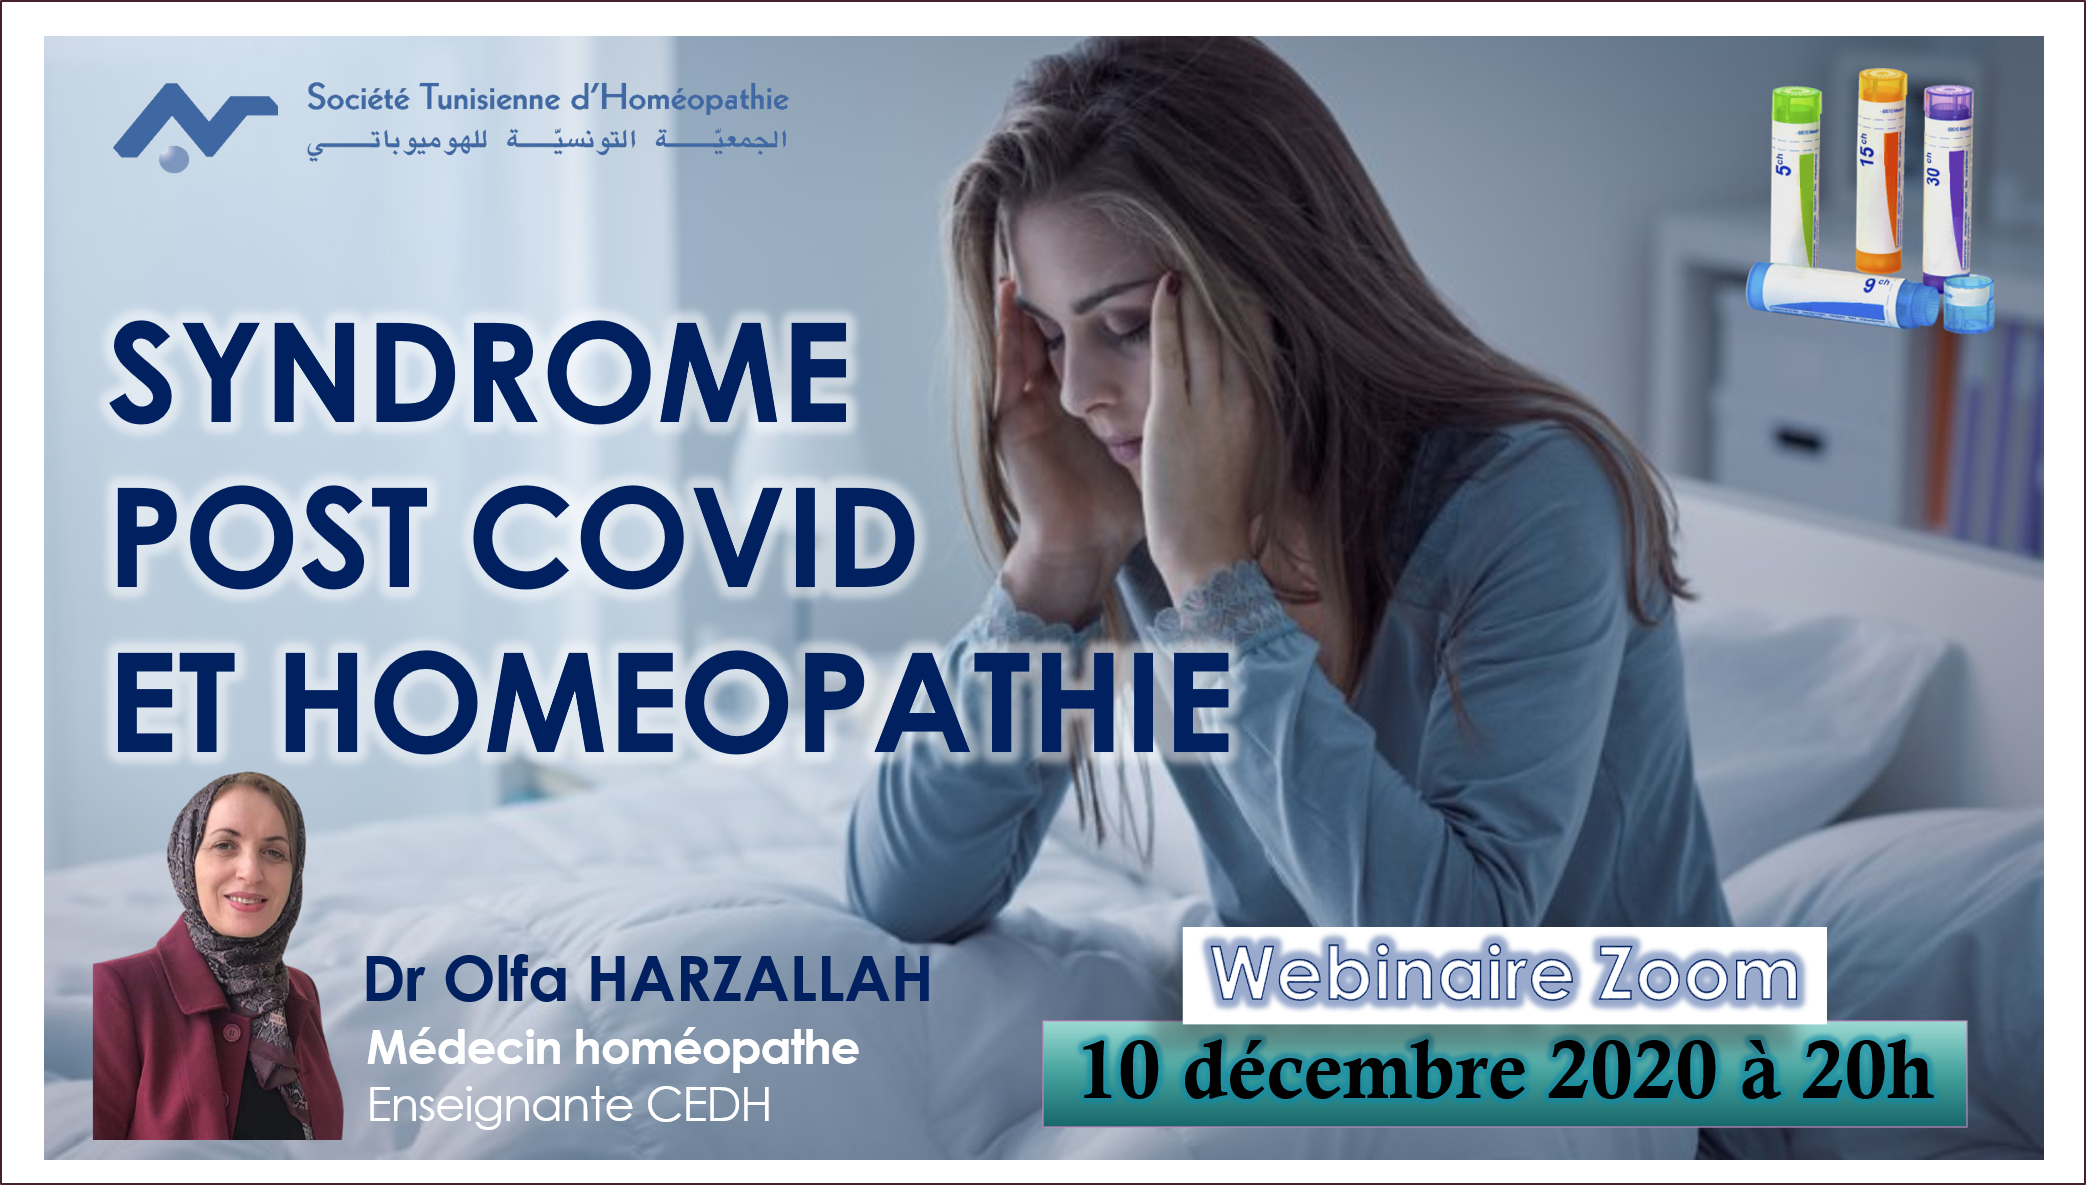 SYNDROME  POST COVID  ET HOMEOPATHIE